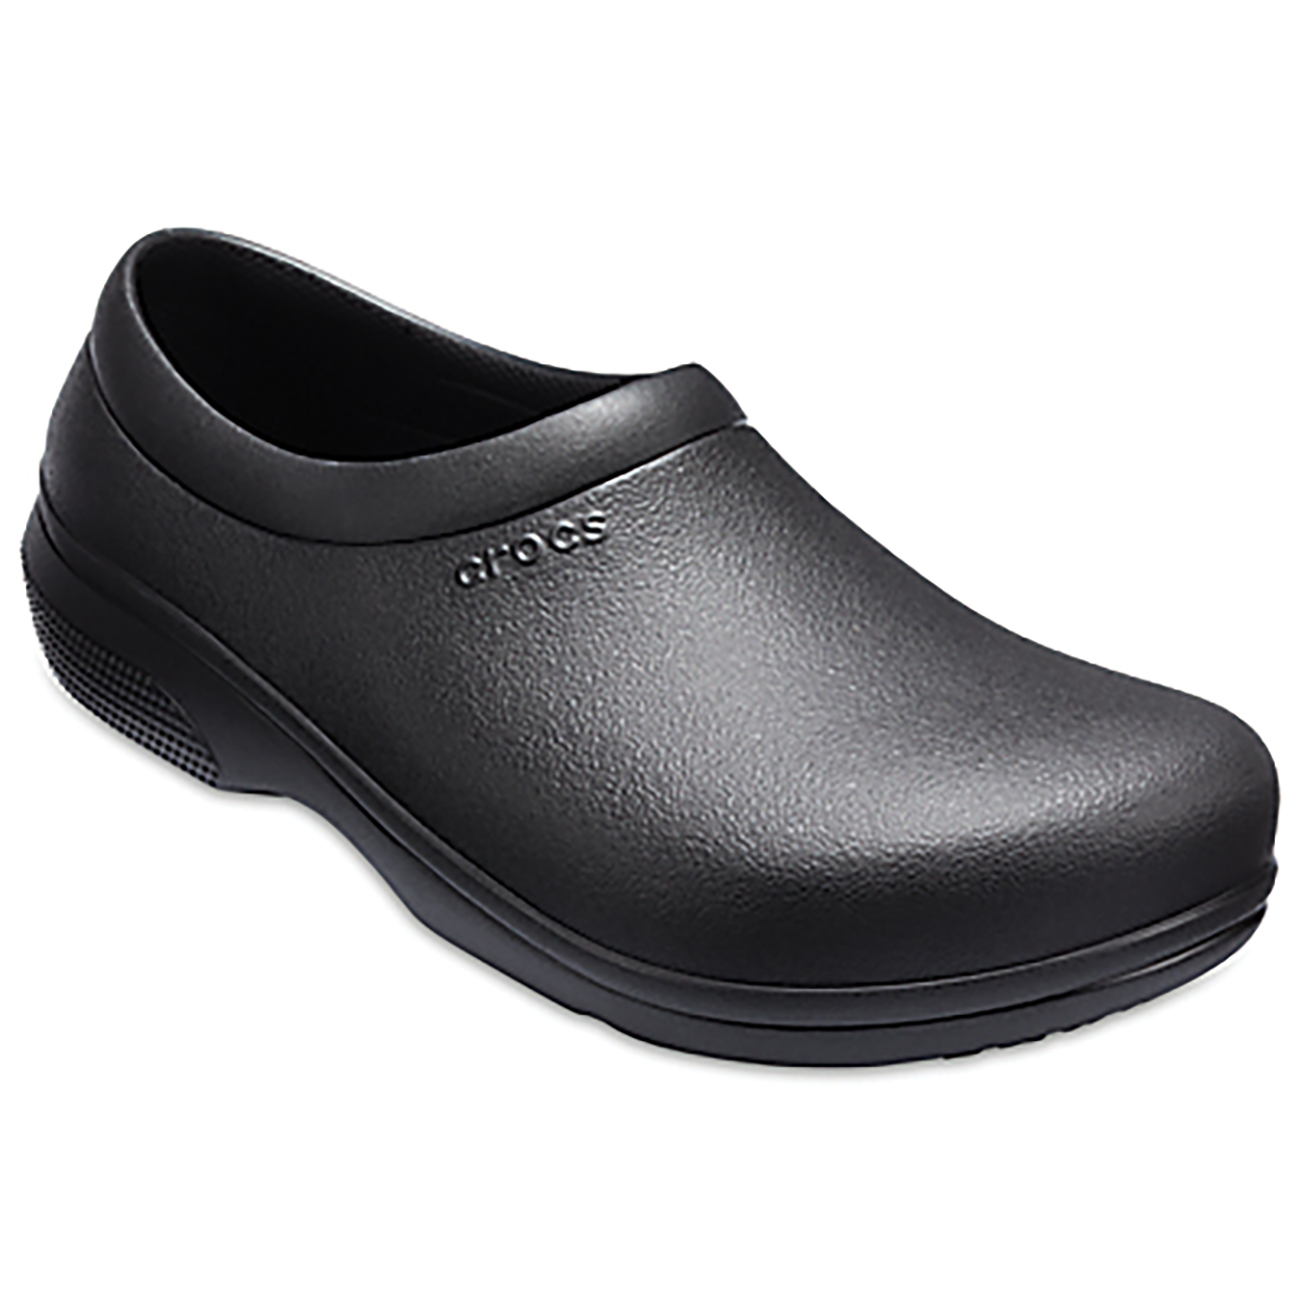 Unisex Adults Crocs On The Clock Work